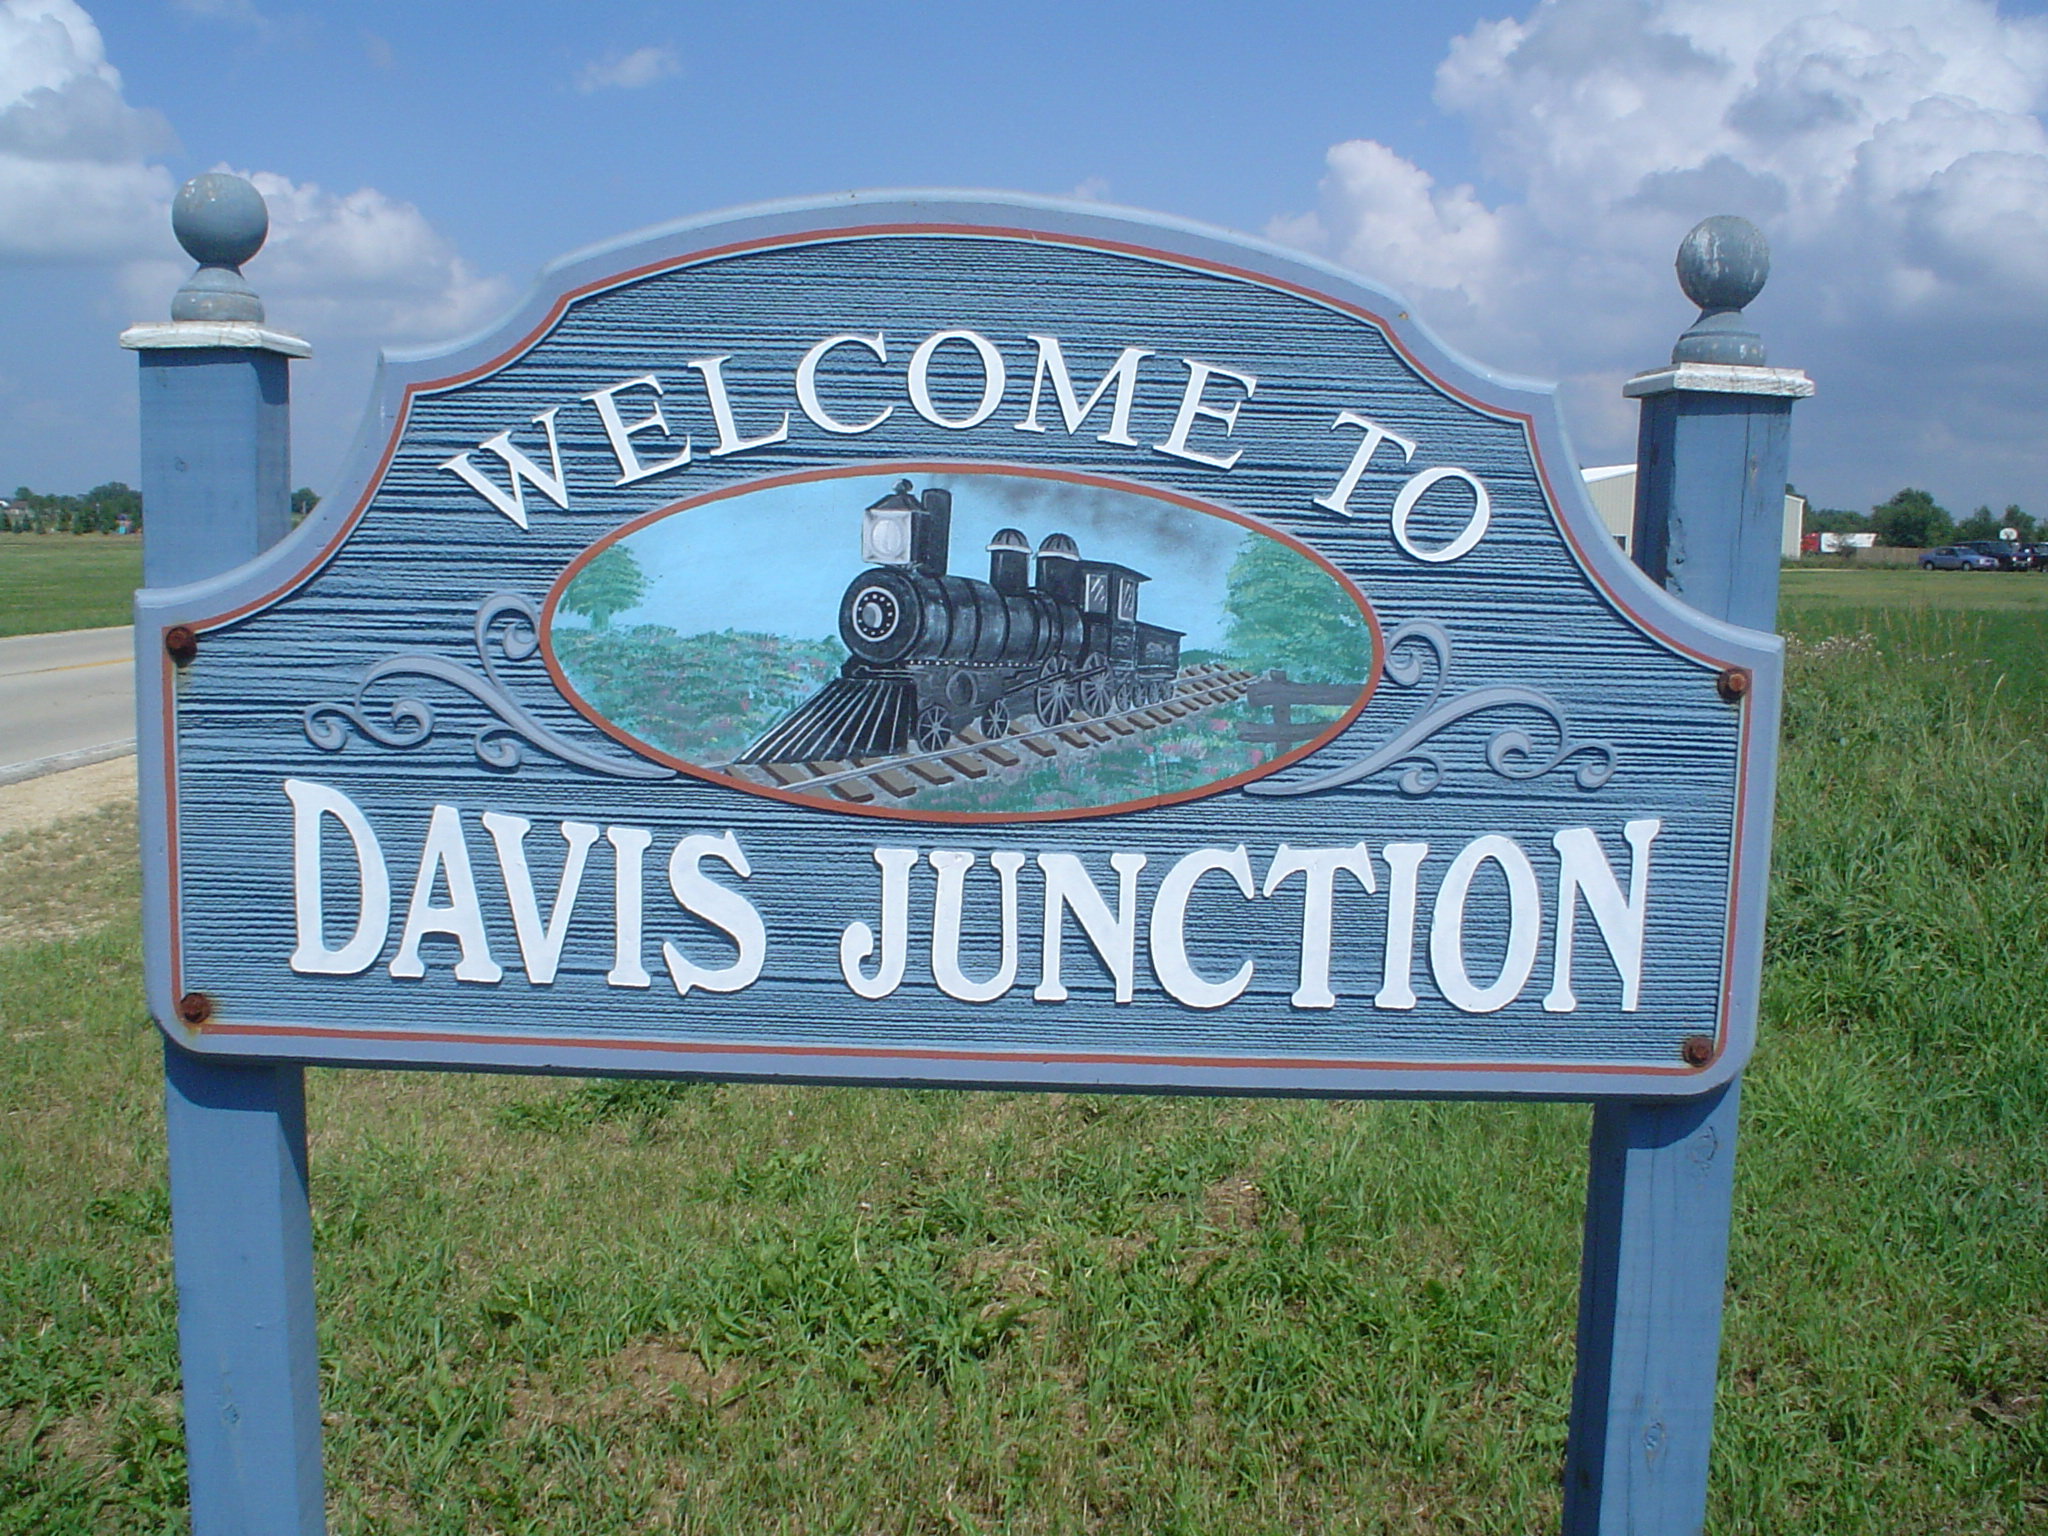 davis junction Search 9 rental properties in davis junction, illinois find davis junction apartments, condos, town homes, single family homes and much more on trulia.